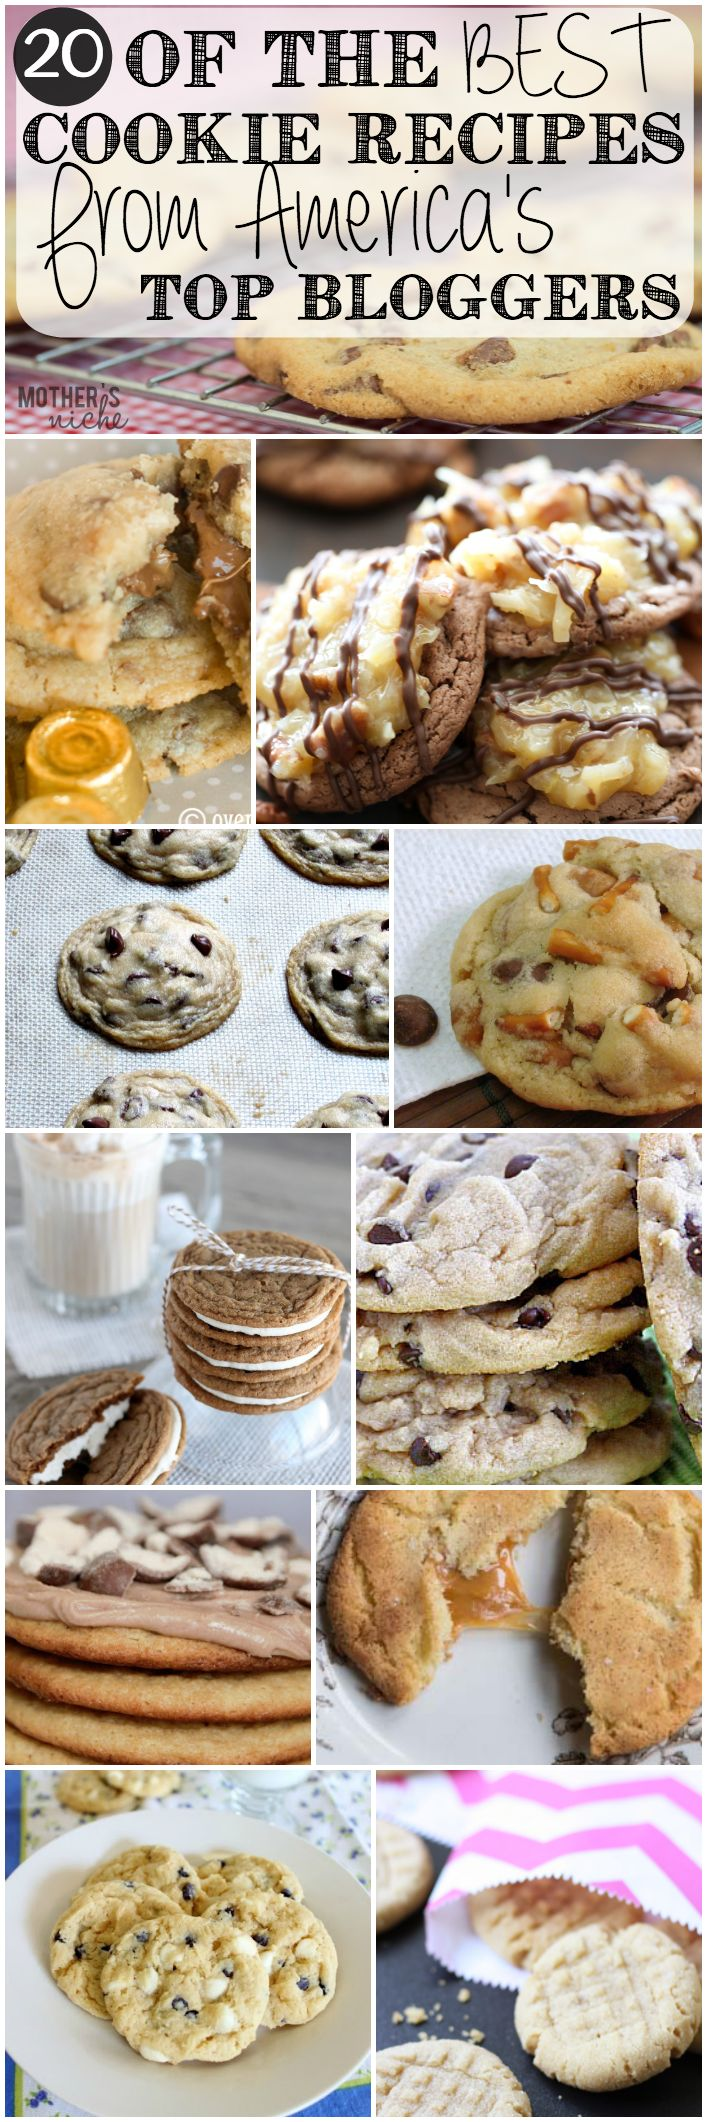 20 of the BEST cookie recipes all I'm one place!!